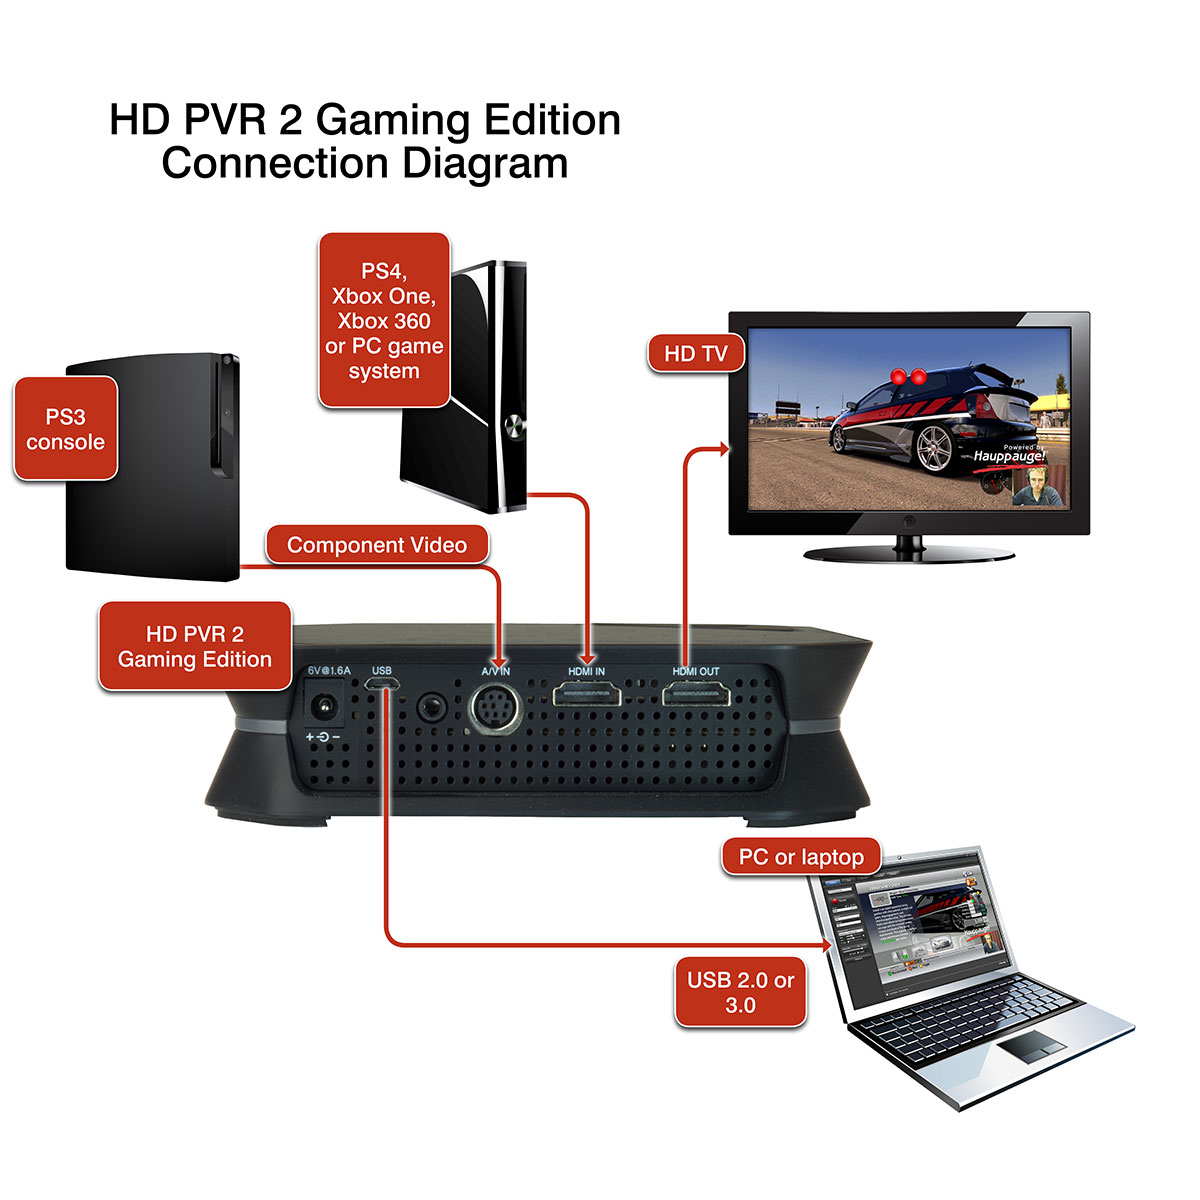 Hauppauge Hd Pvr 2 Gaming Edition Product Description Power Diagram Besides Apple Tv Cable Box Connections On Cord Cables Needed Image